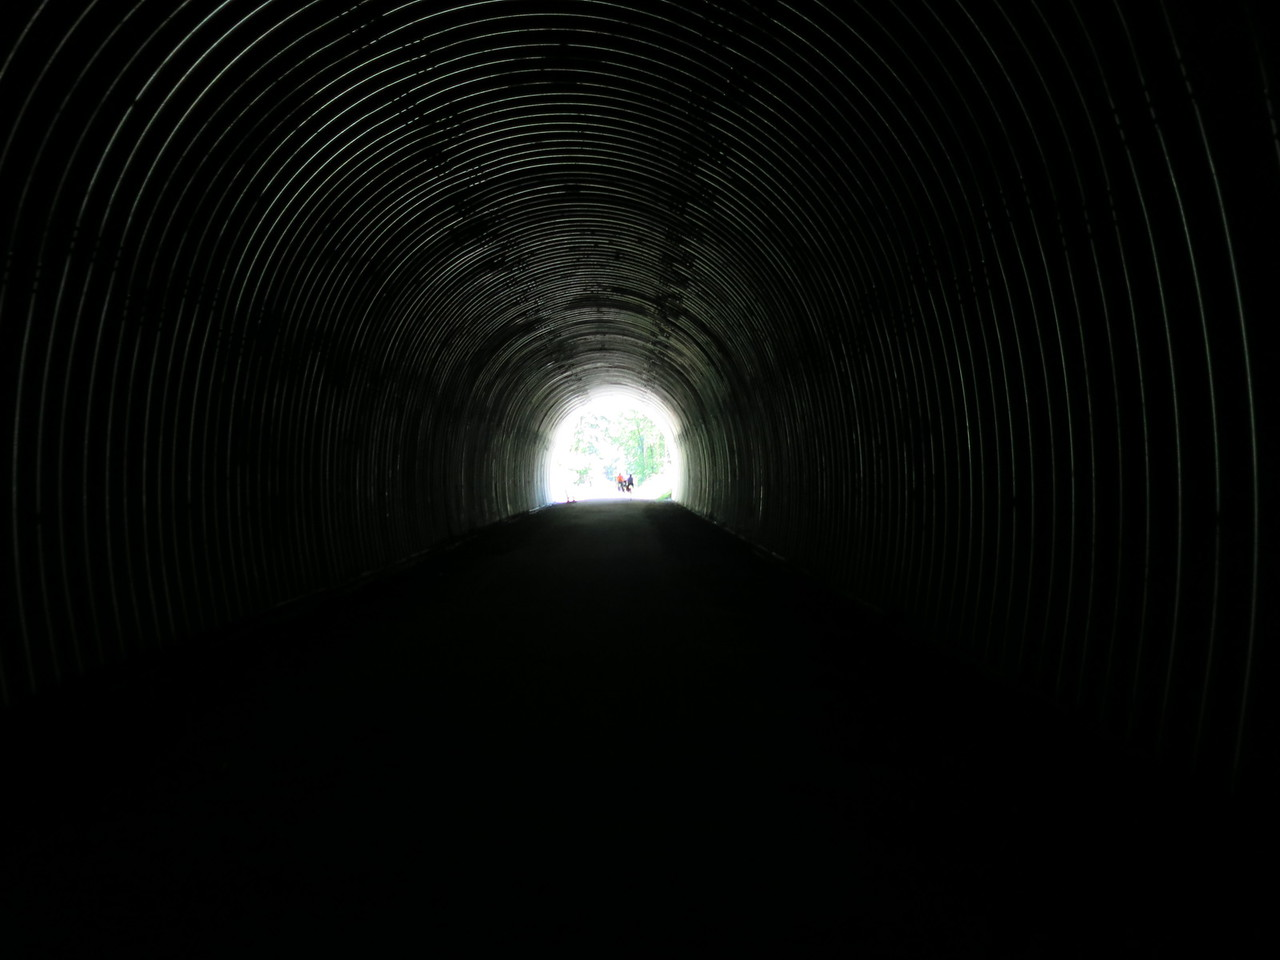 Inside the tunnel looking out